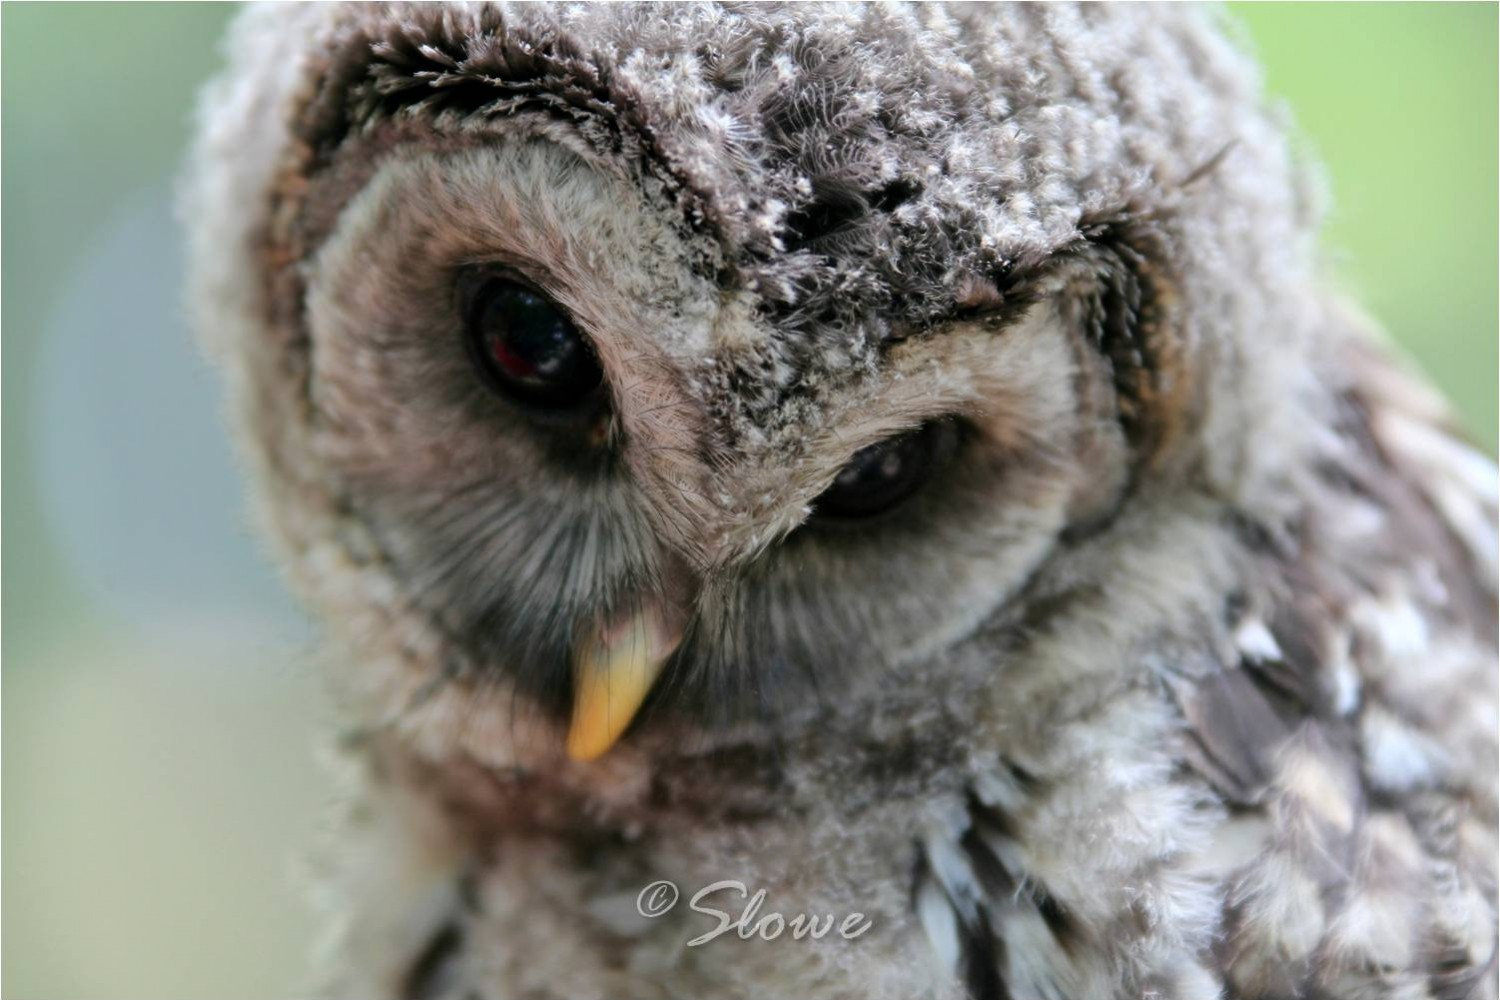 A Portrait of Clack, the Blind Owl